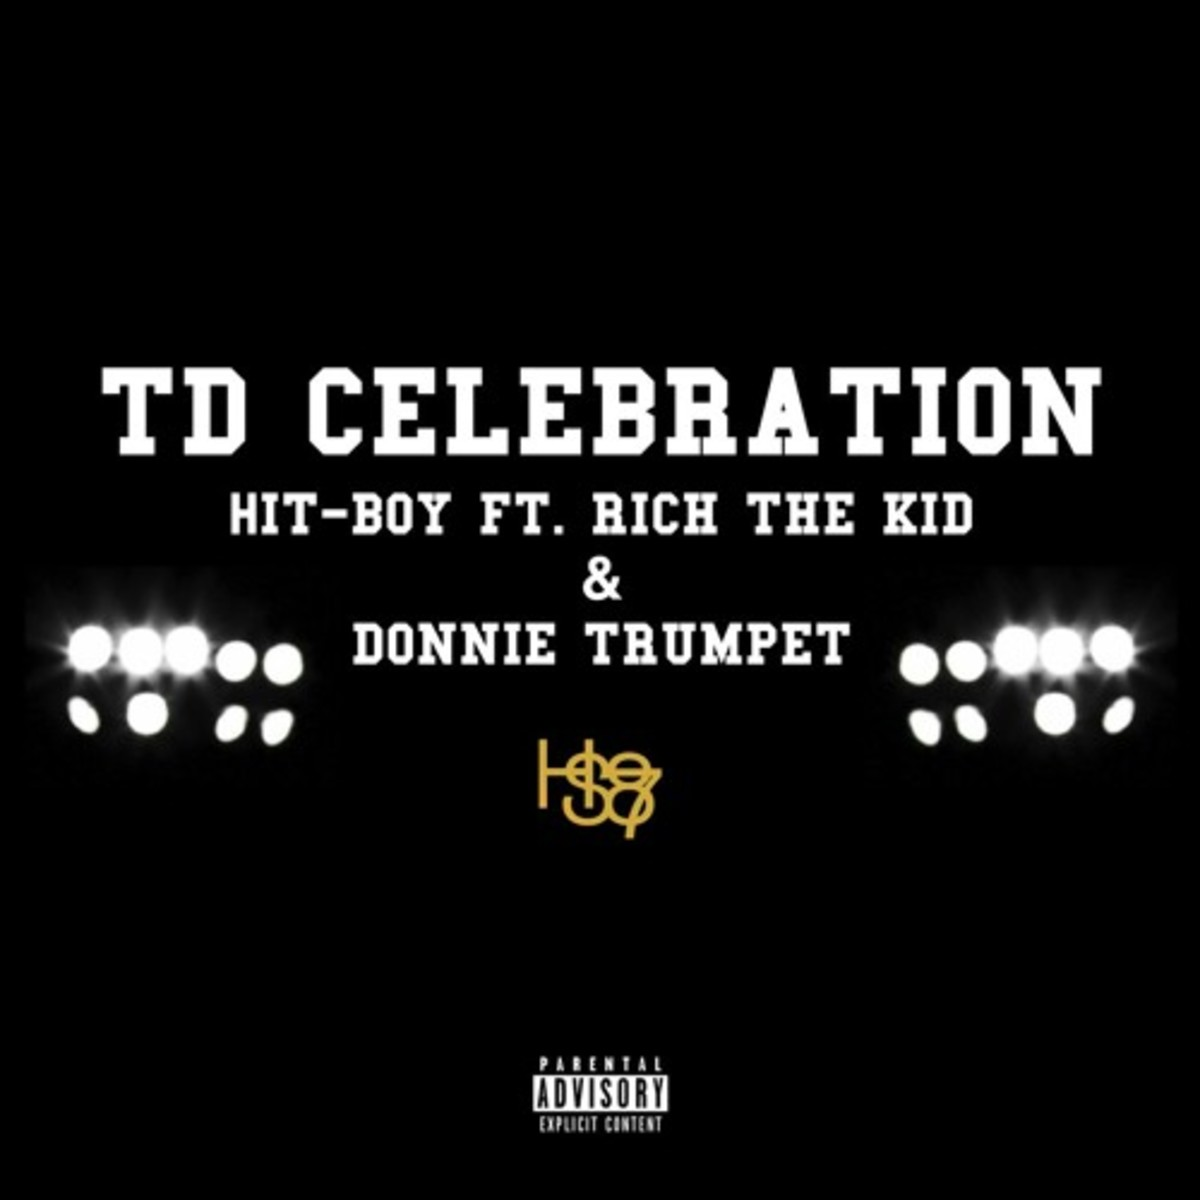 hit-boy-td-celebration.jpg